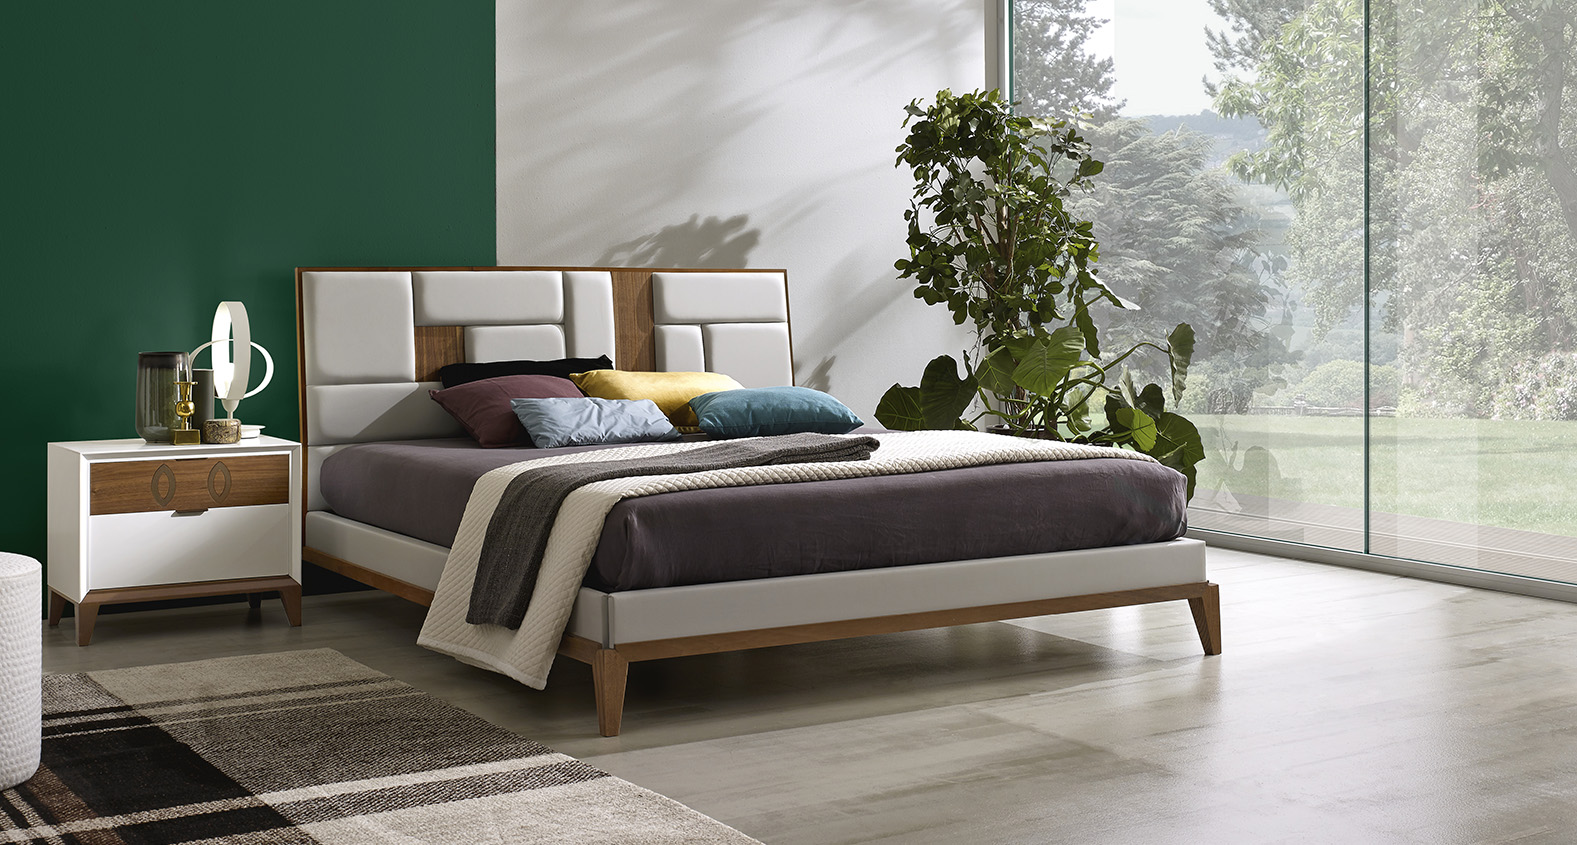 DESIGNER WALTER TURINI <br> Bed with tile-upholstered headboard and inserts in Canaletto walnut, bed surround with pedestal and feet in Canaletto walnut, side panels in faux leather.